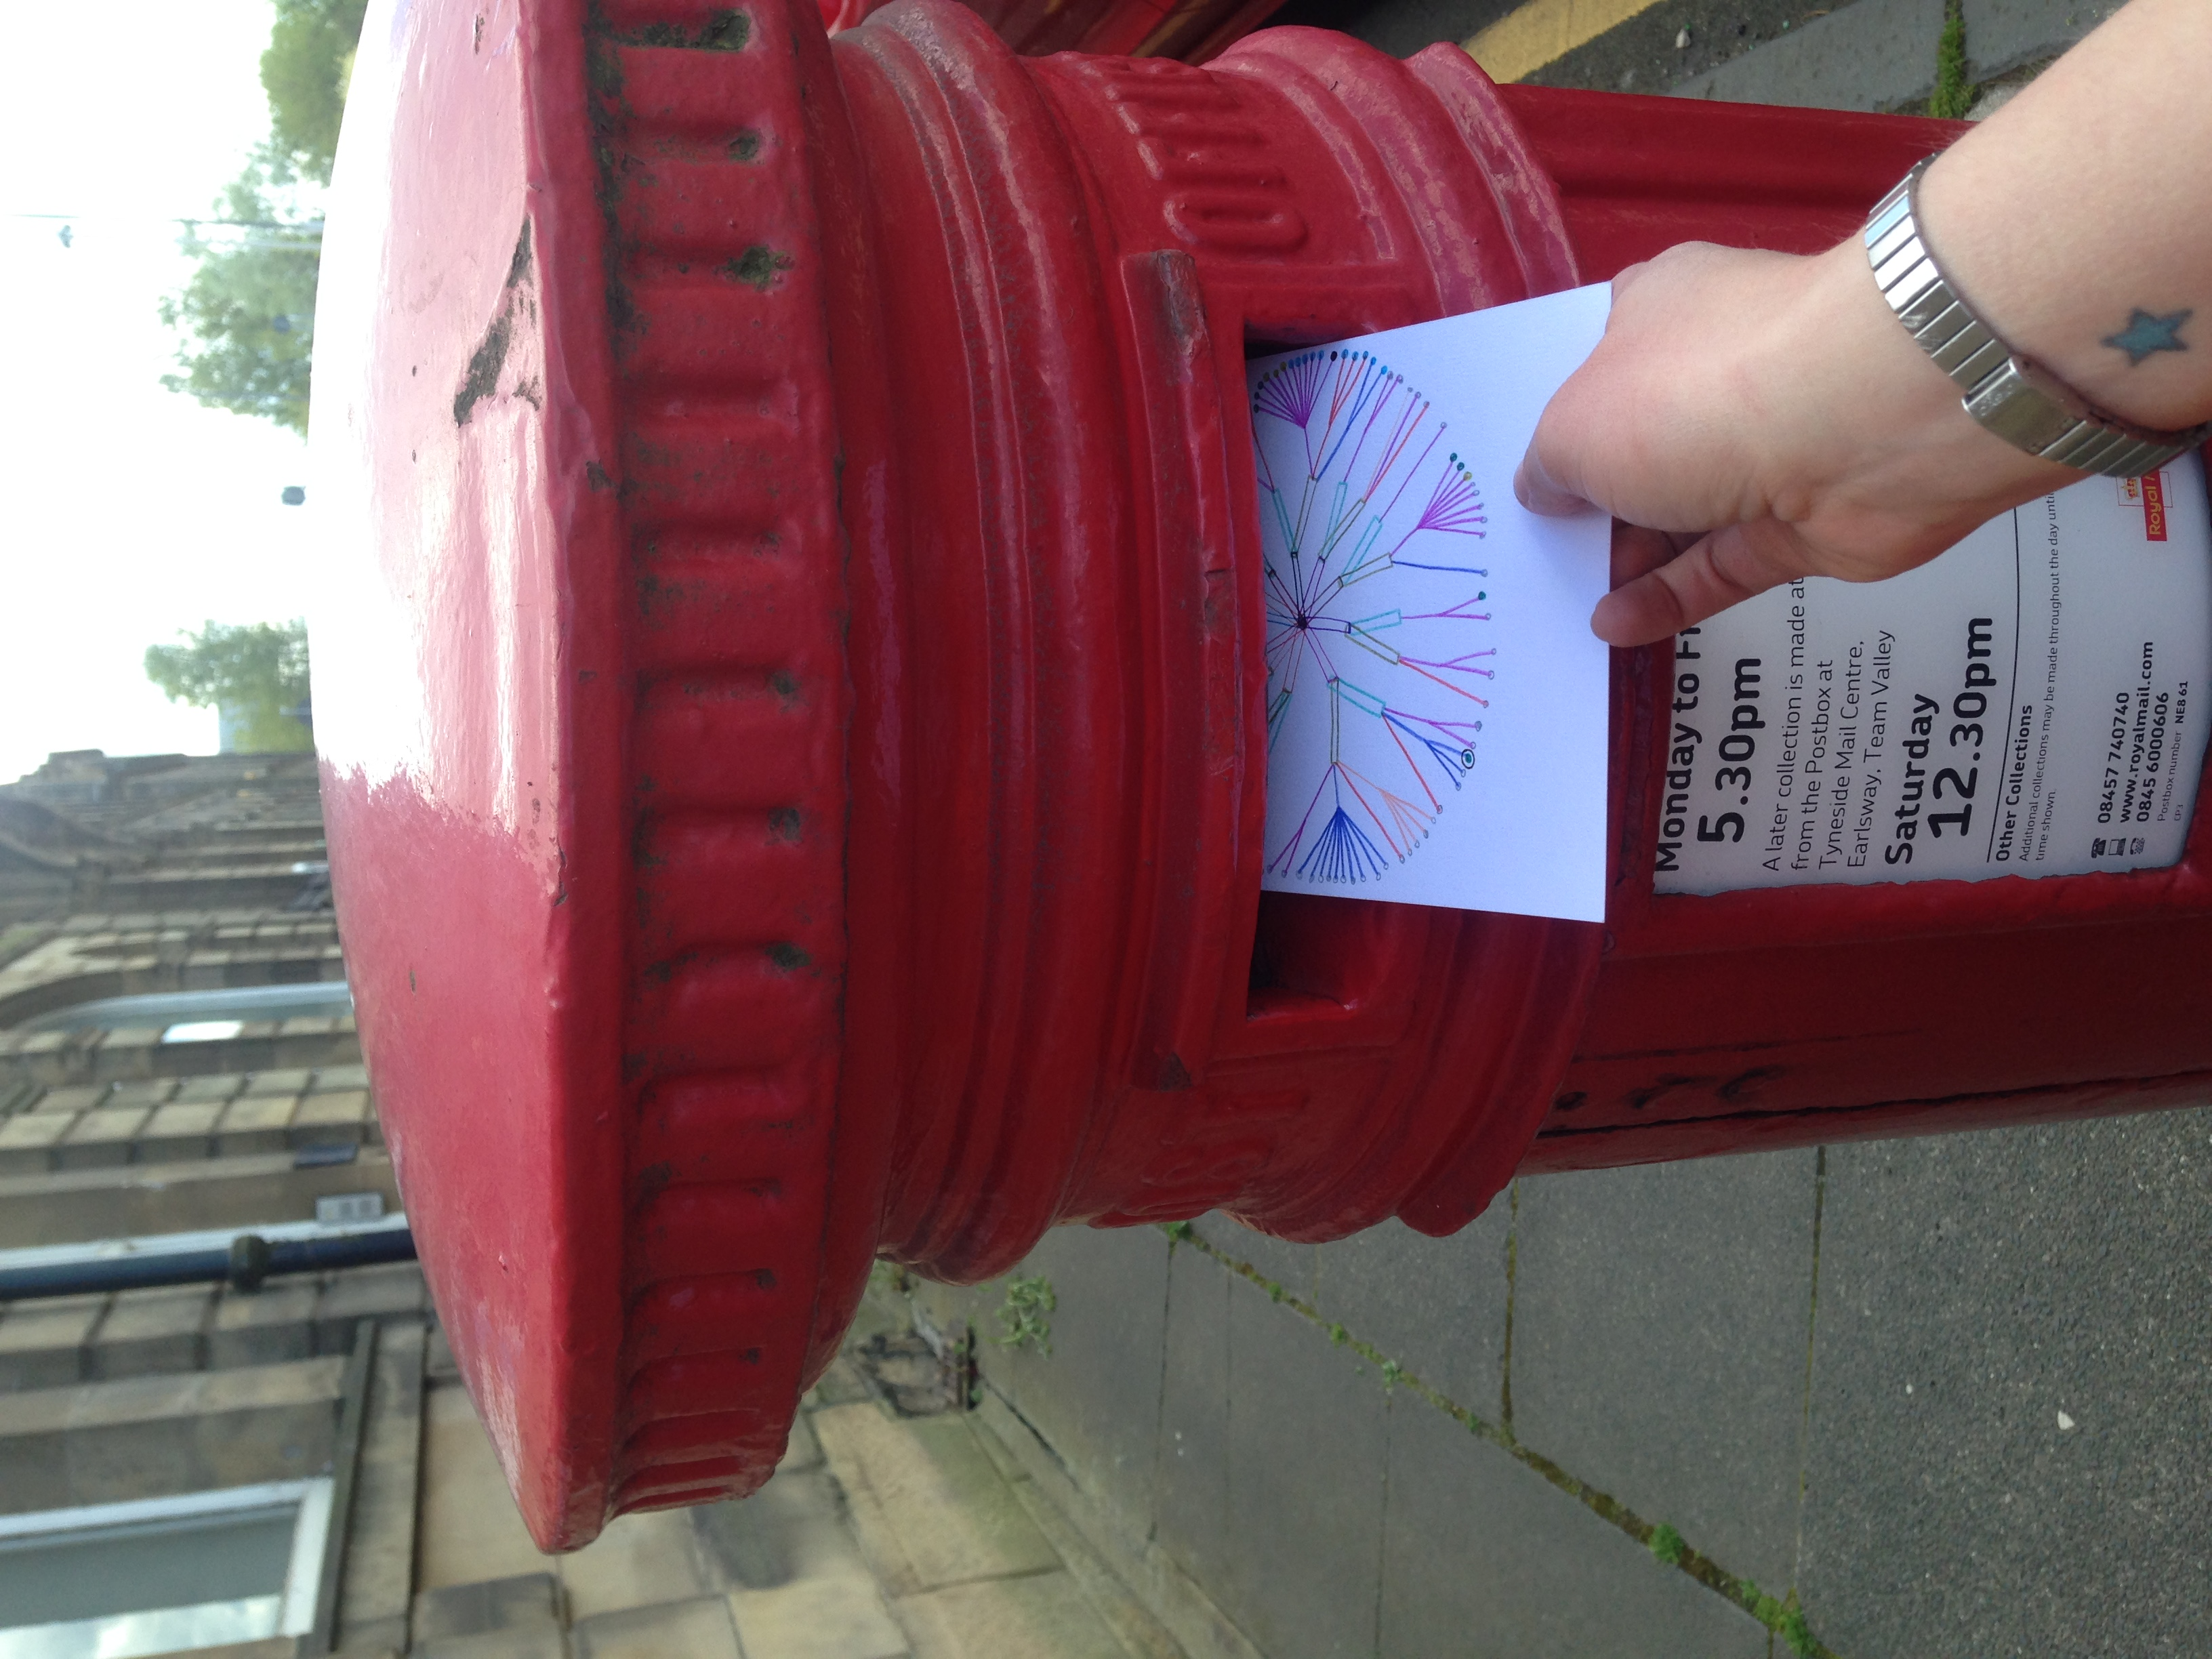 Posting the second card while on a trip to Newcastle